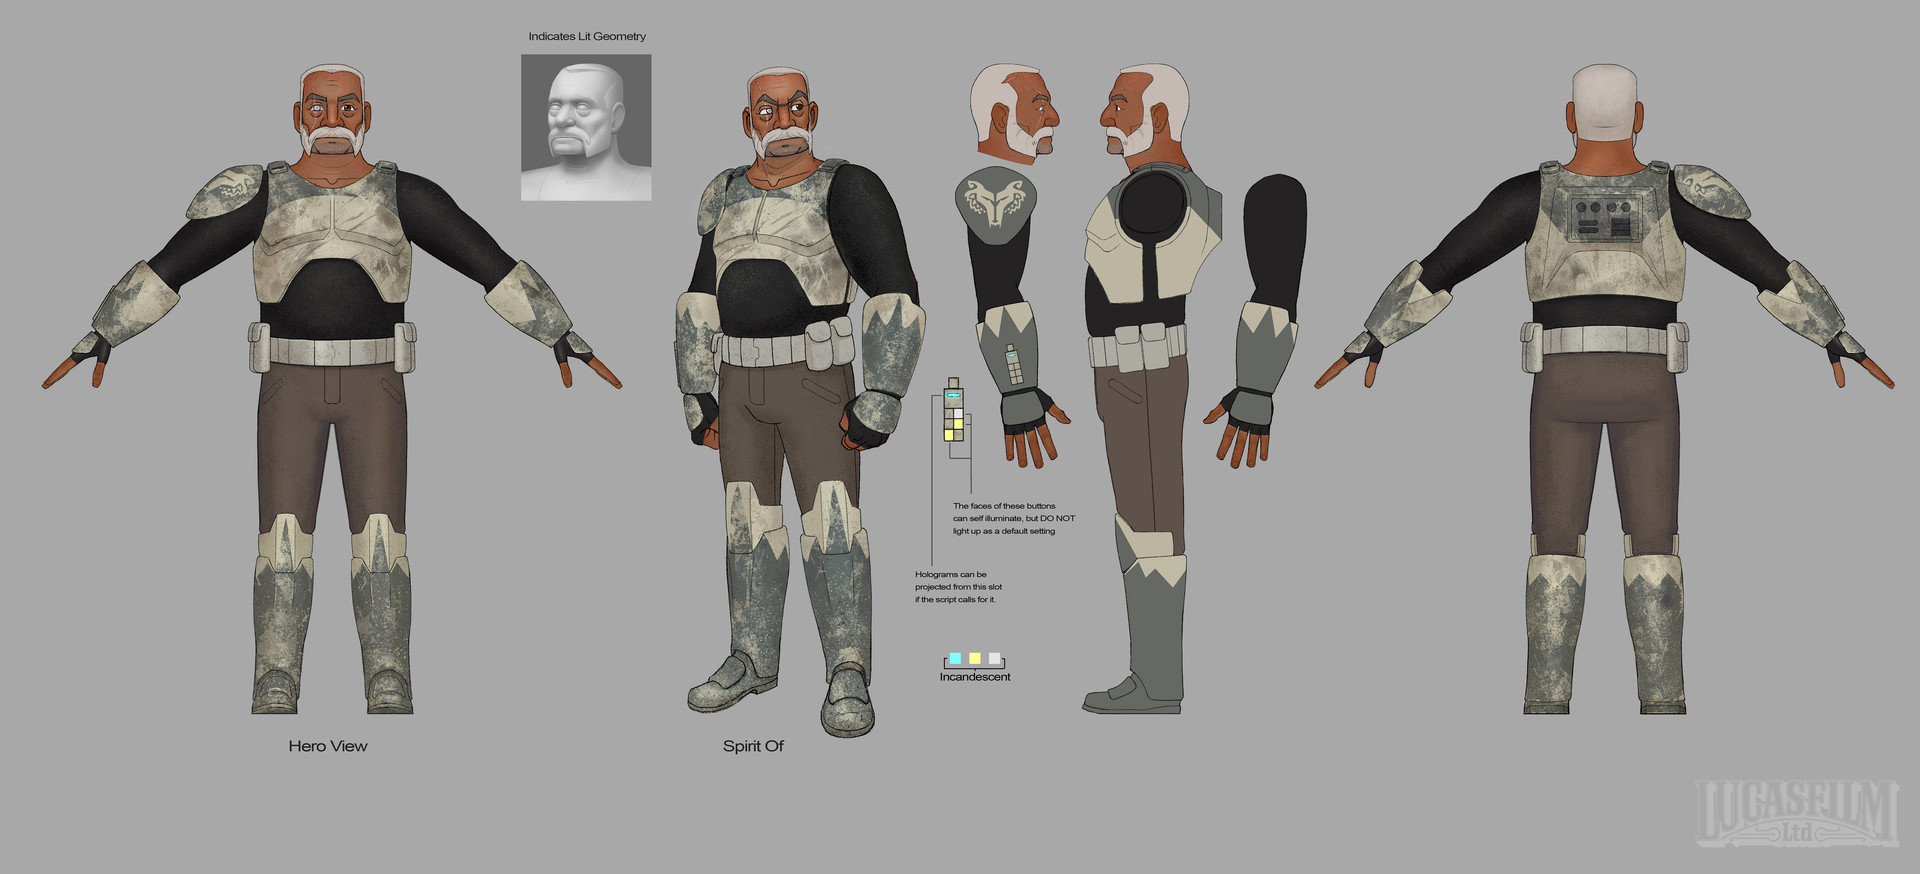 Concept Art For Clone Troopers